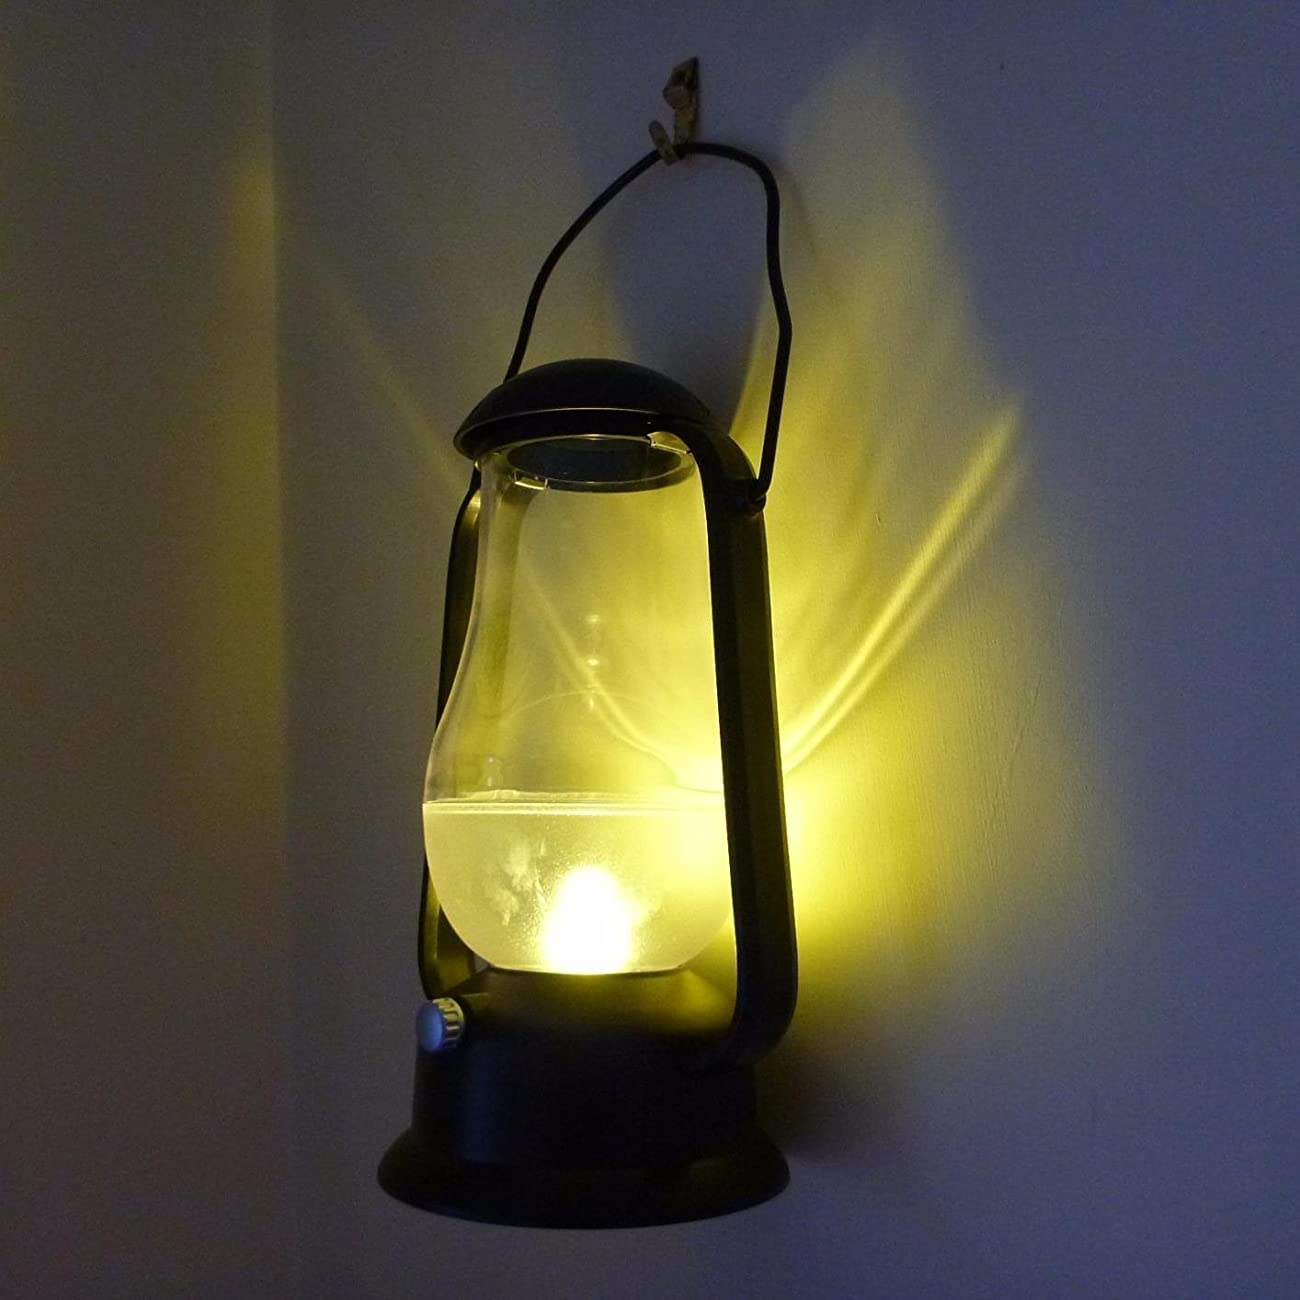 e-joy ej-0025 Portable Blow LED Lamp Blowing Control LED Lantern/Candle Wireless Camping Lamp Nightlight Bedside Lamp 6